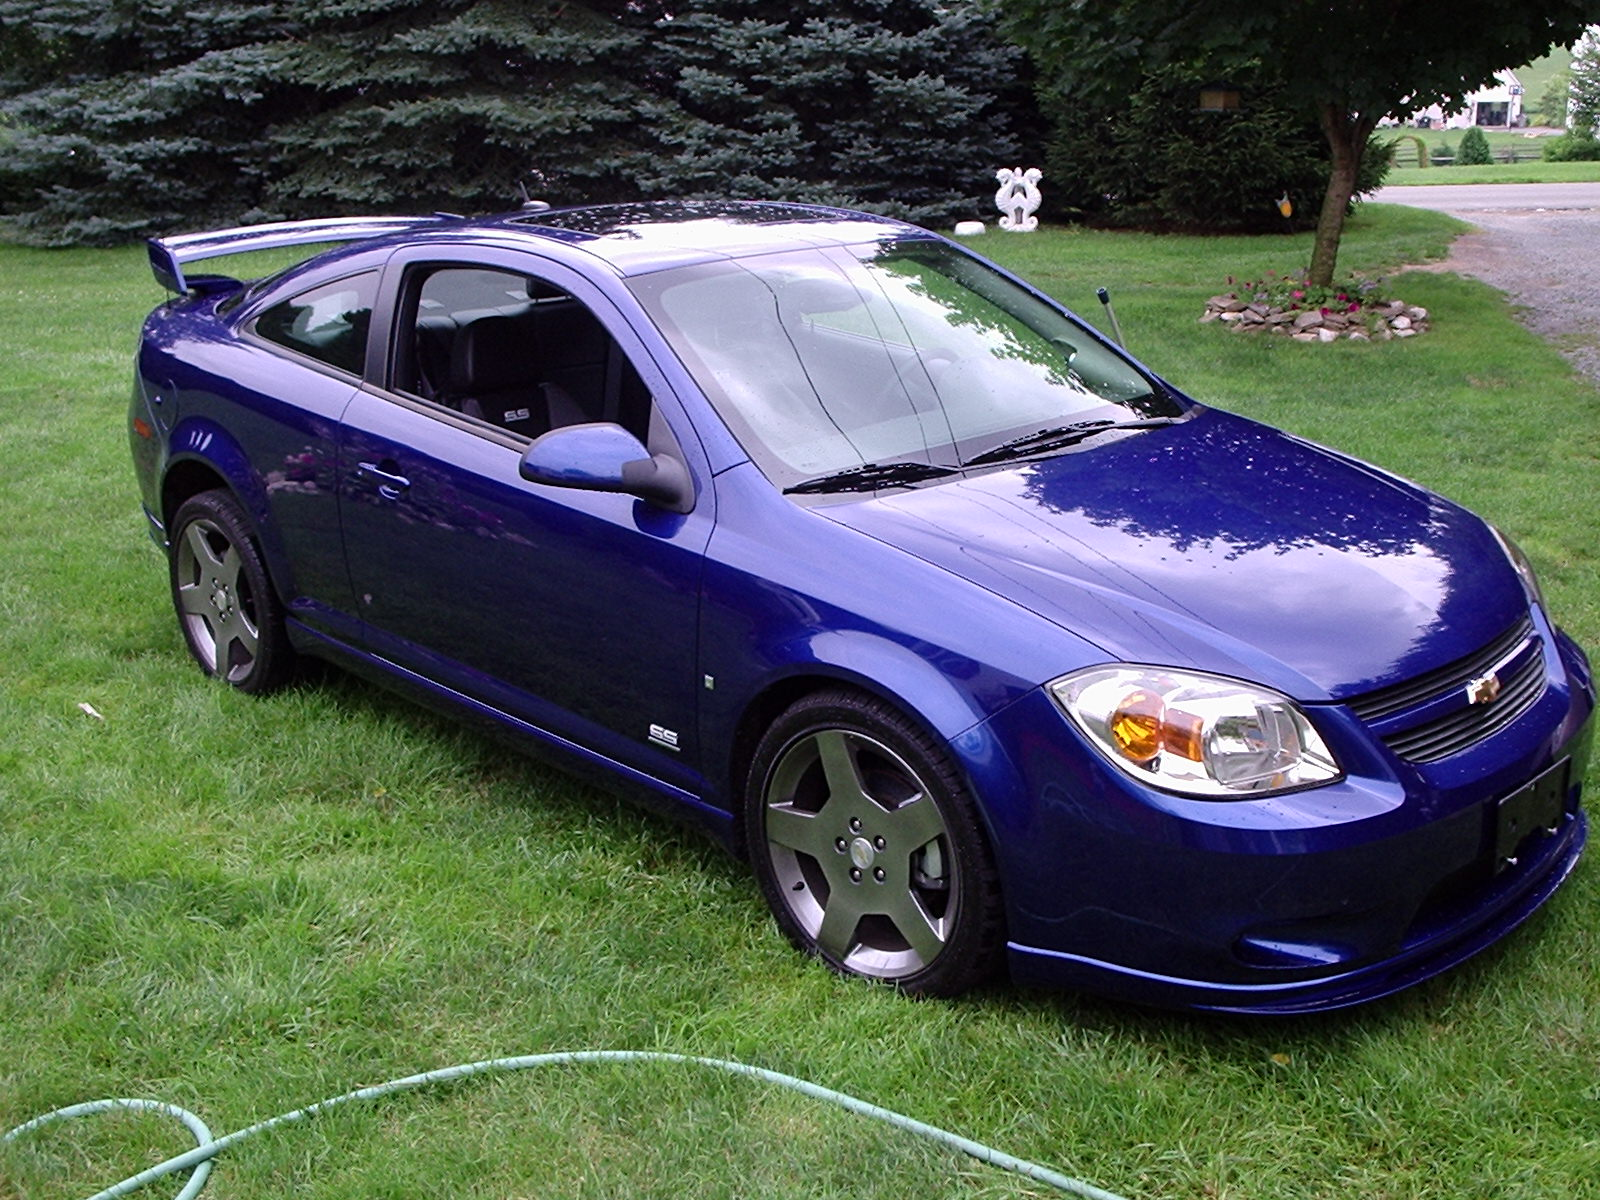 speedo car chevrolet cobalt the best deal in compact cars new cars car reviews car pictures. Black Bedroom Furniture Sets. Home Design Ideas